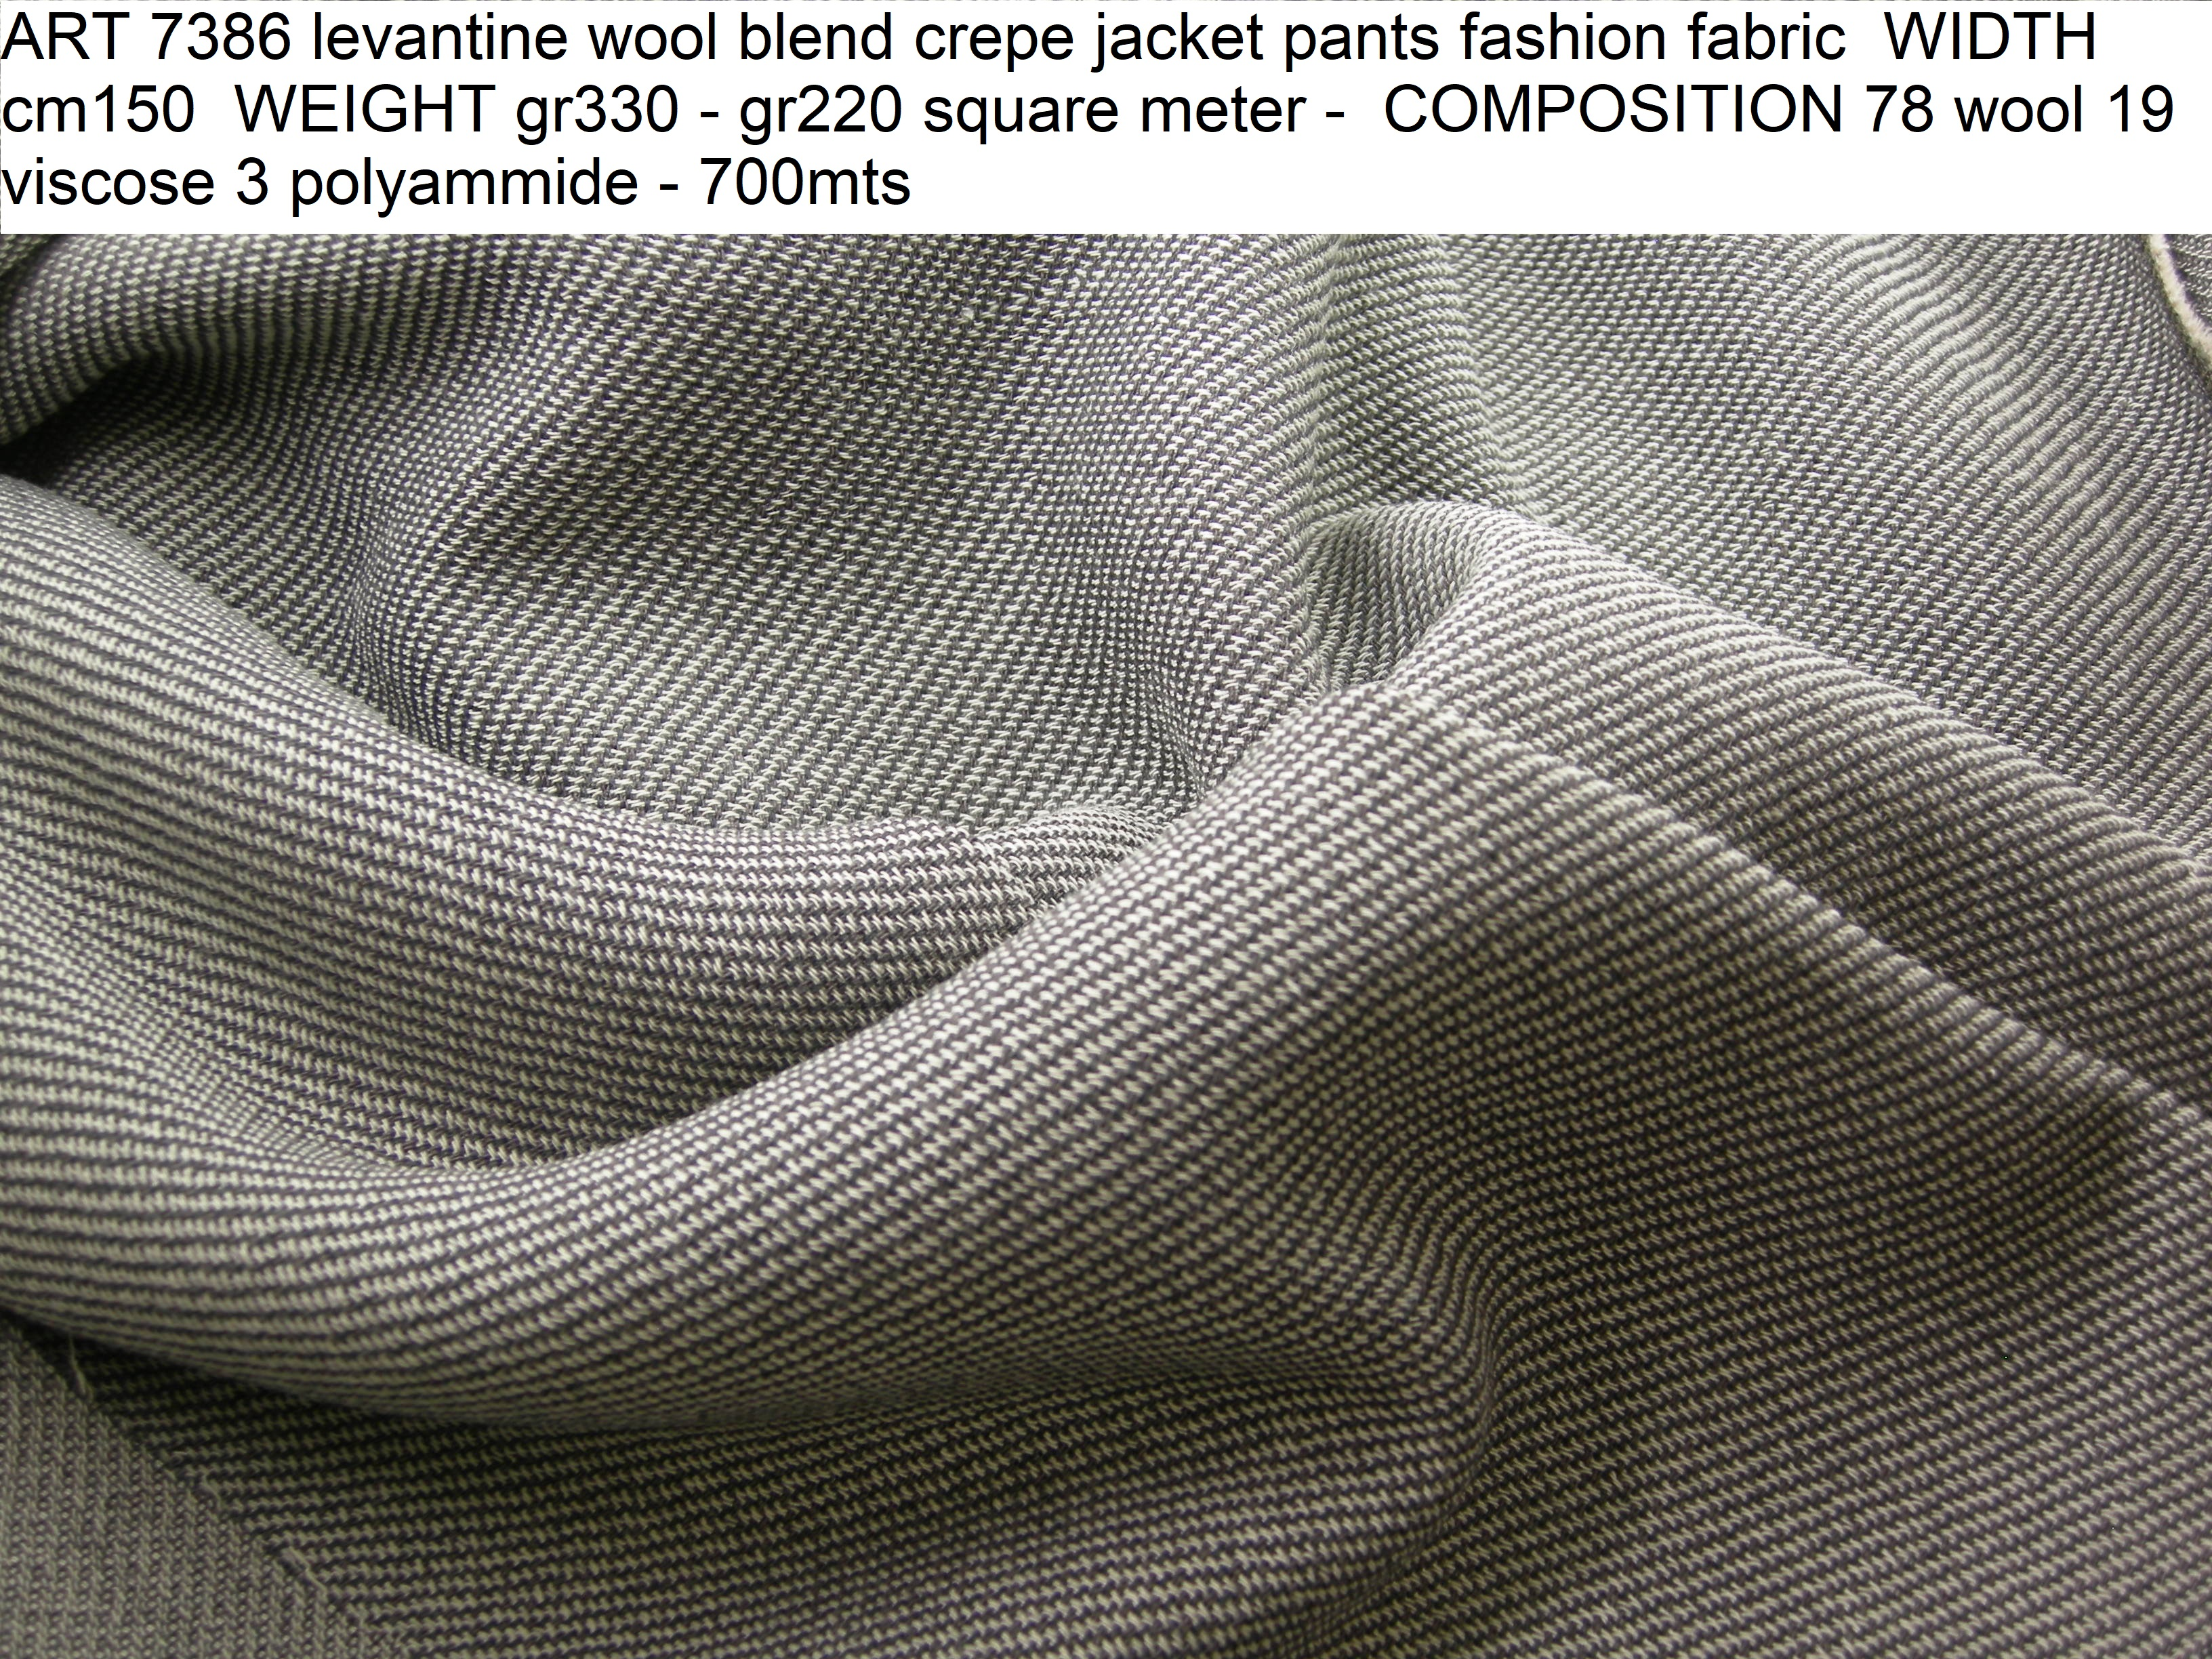 ART 7386 levantine wool blend crepe jacket pants fashion fabric WIDTH cm150 WEIGHT gr330 - gr220 square meter - COMPOSITION 78 wool 19 viscose 3 polyammide - 700mts